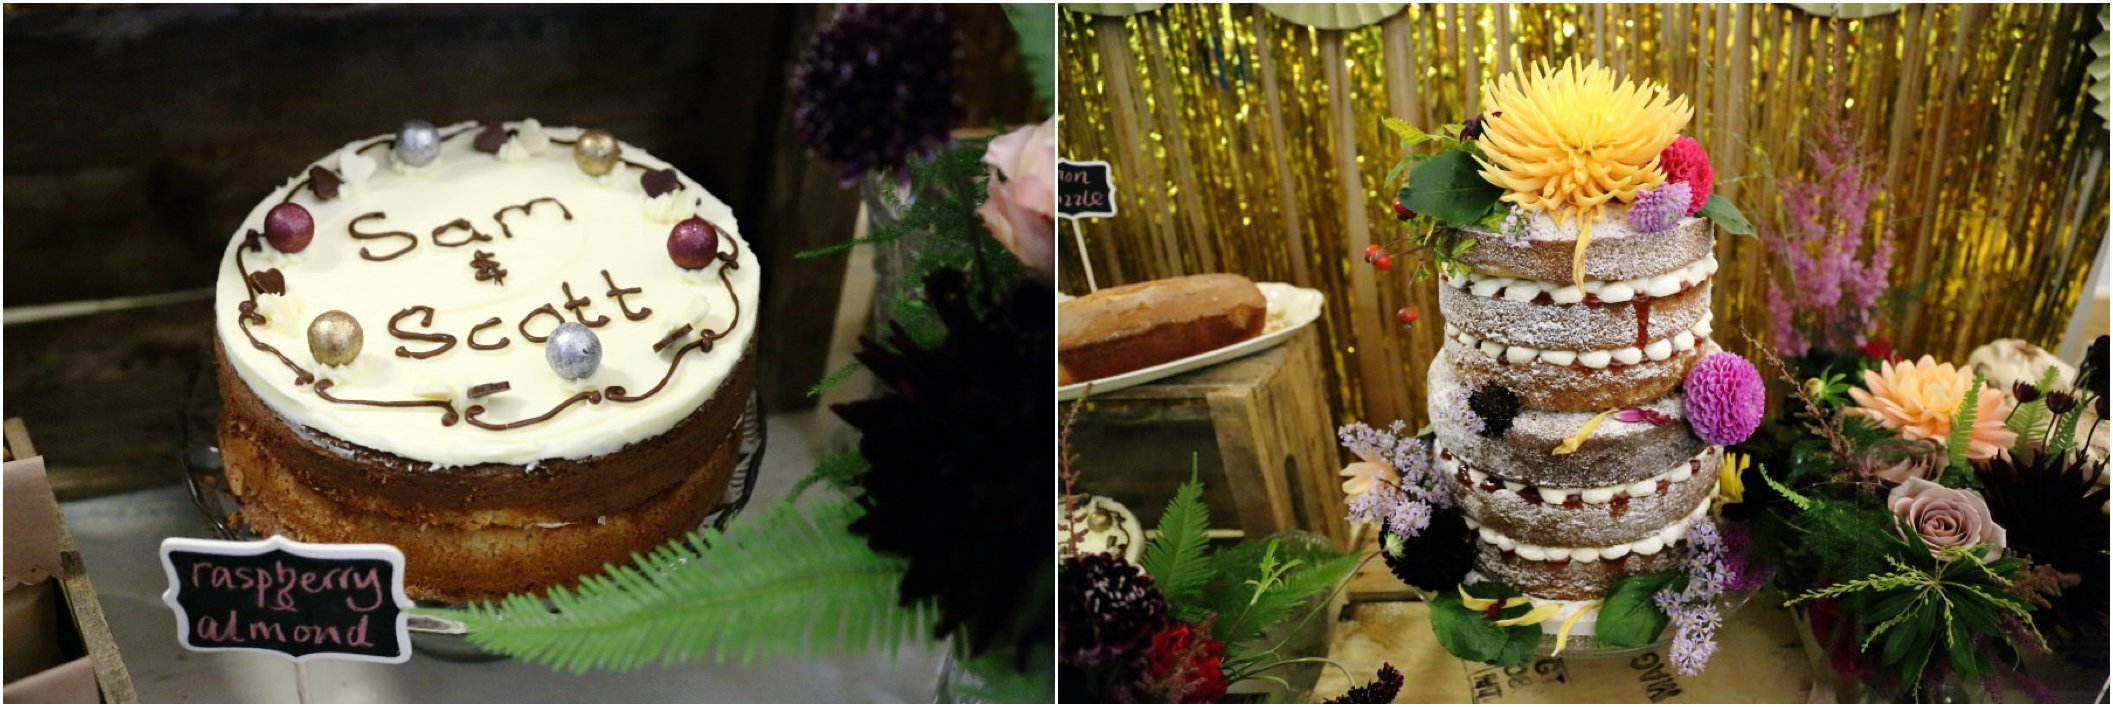 cake table at quirky wedding manuden village hall